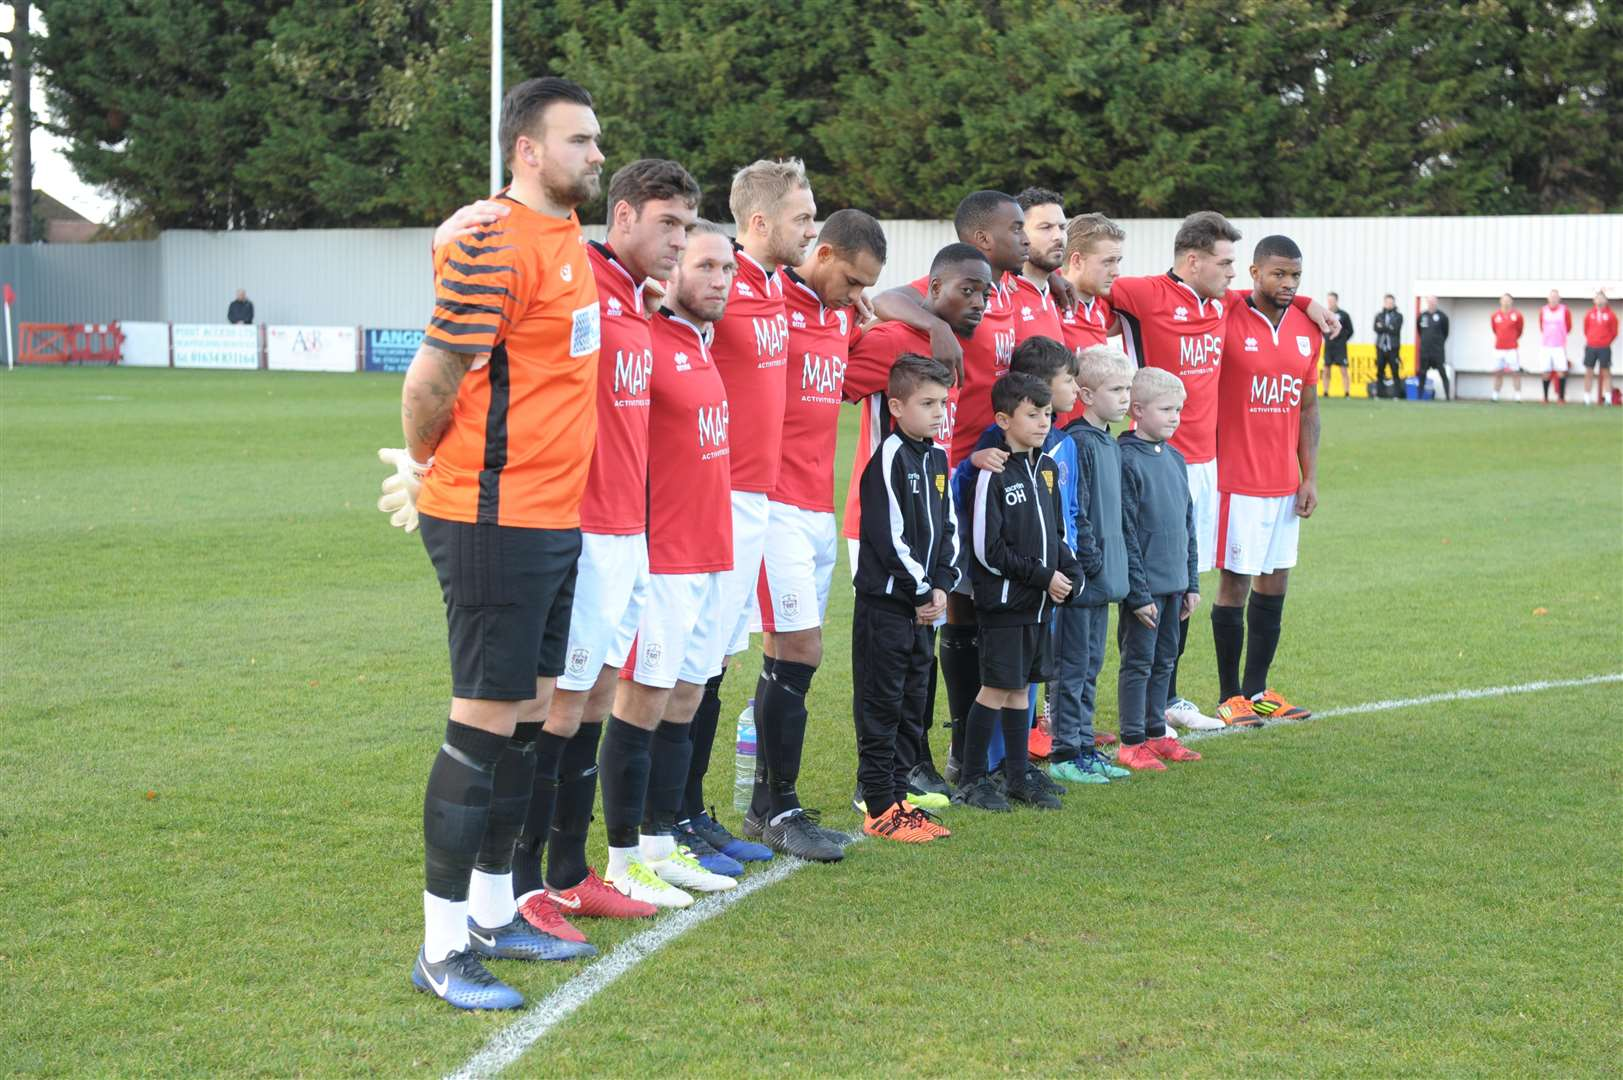 Chatham Town FC lost the match 1-0.